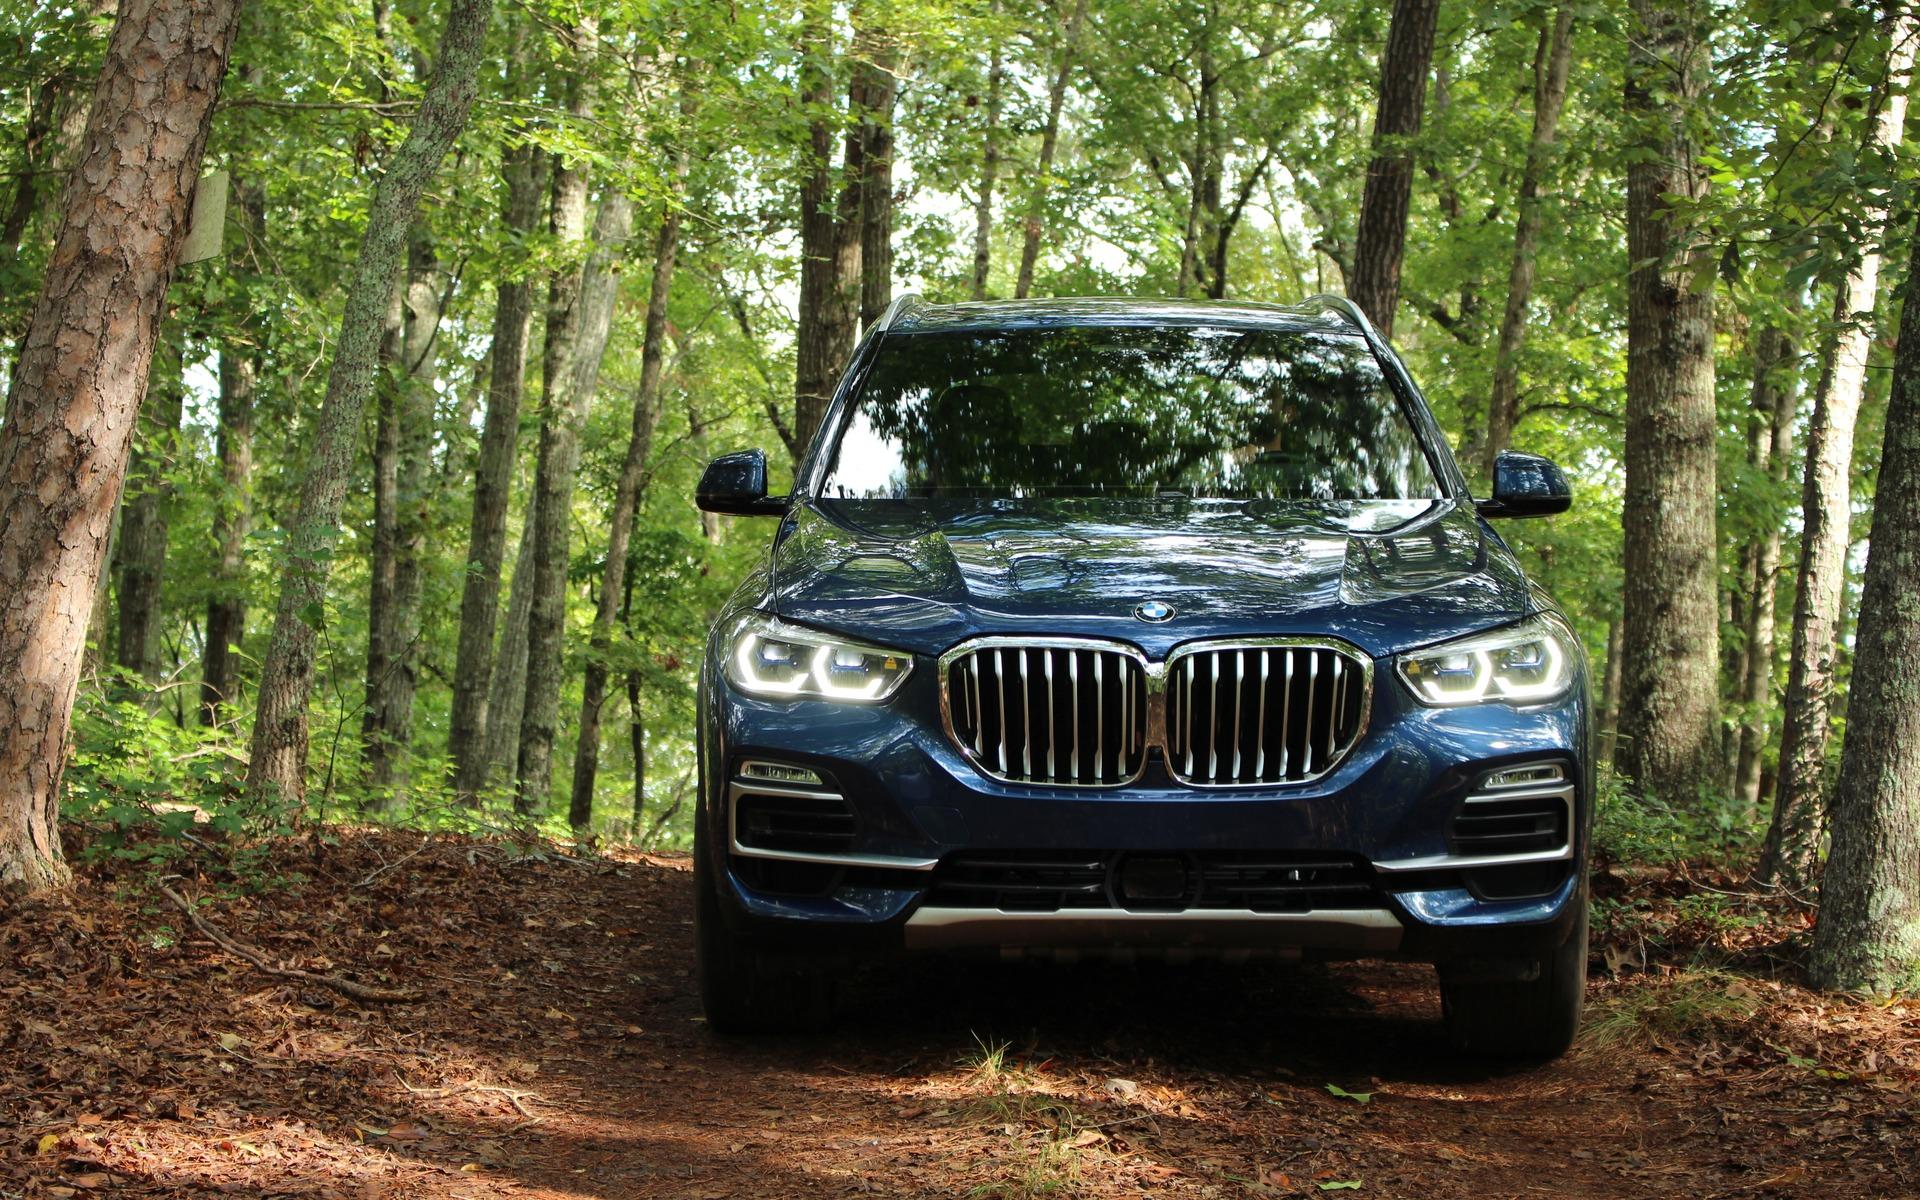 2019 Bmw X5 Technological Evolution 37 37